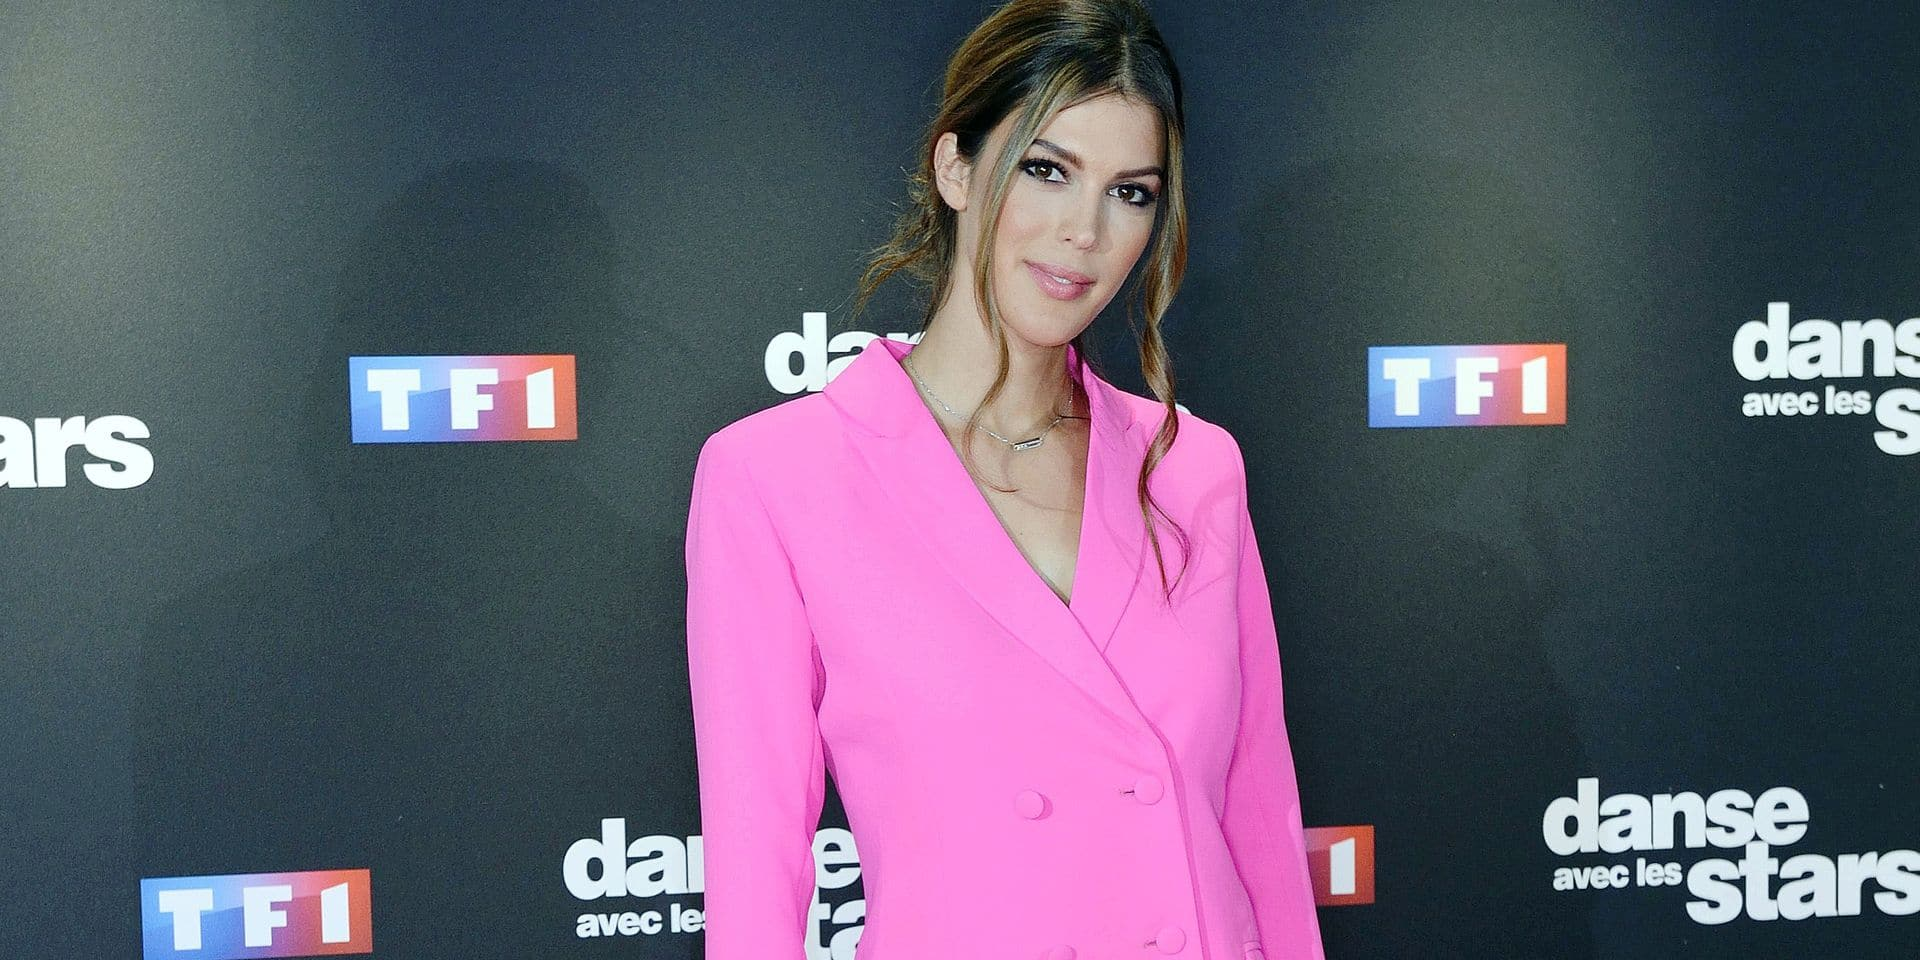 Iris Mittenaere attending the Danse Avec Les Stars photocall at TF1 TV studios in Paris, France on September 11, 2018. Photo by Aurore Marechal/ABACAPRESS.COM Reporters / Abaca